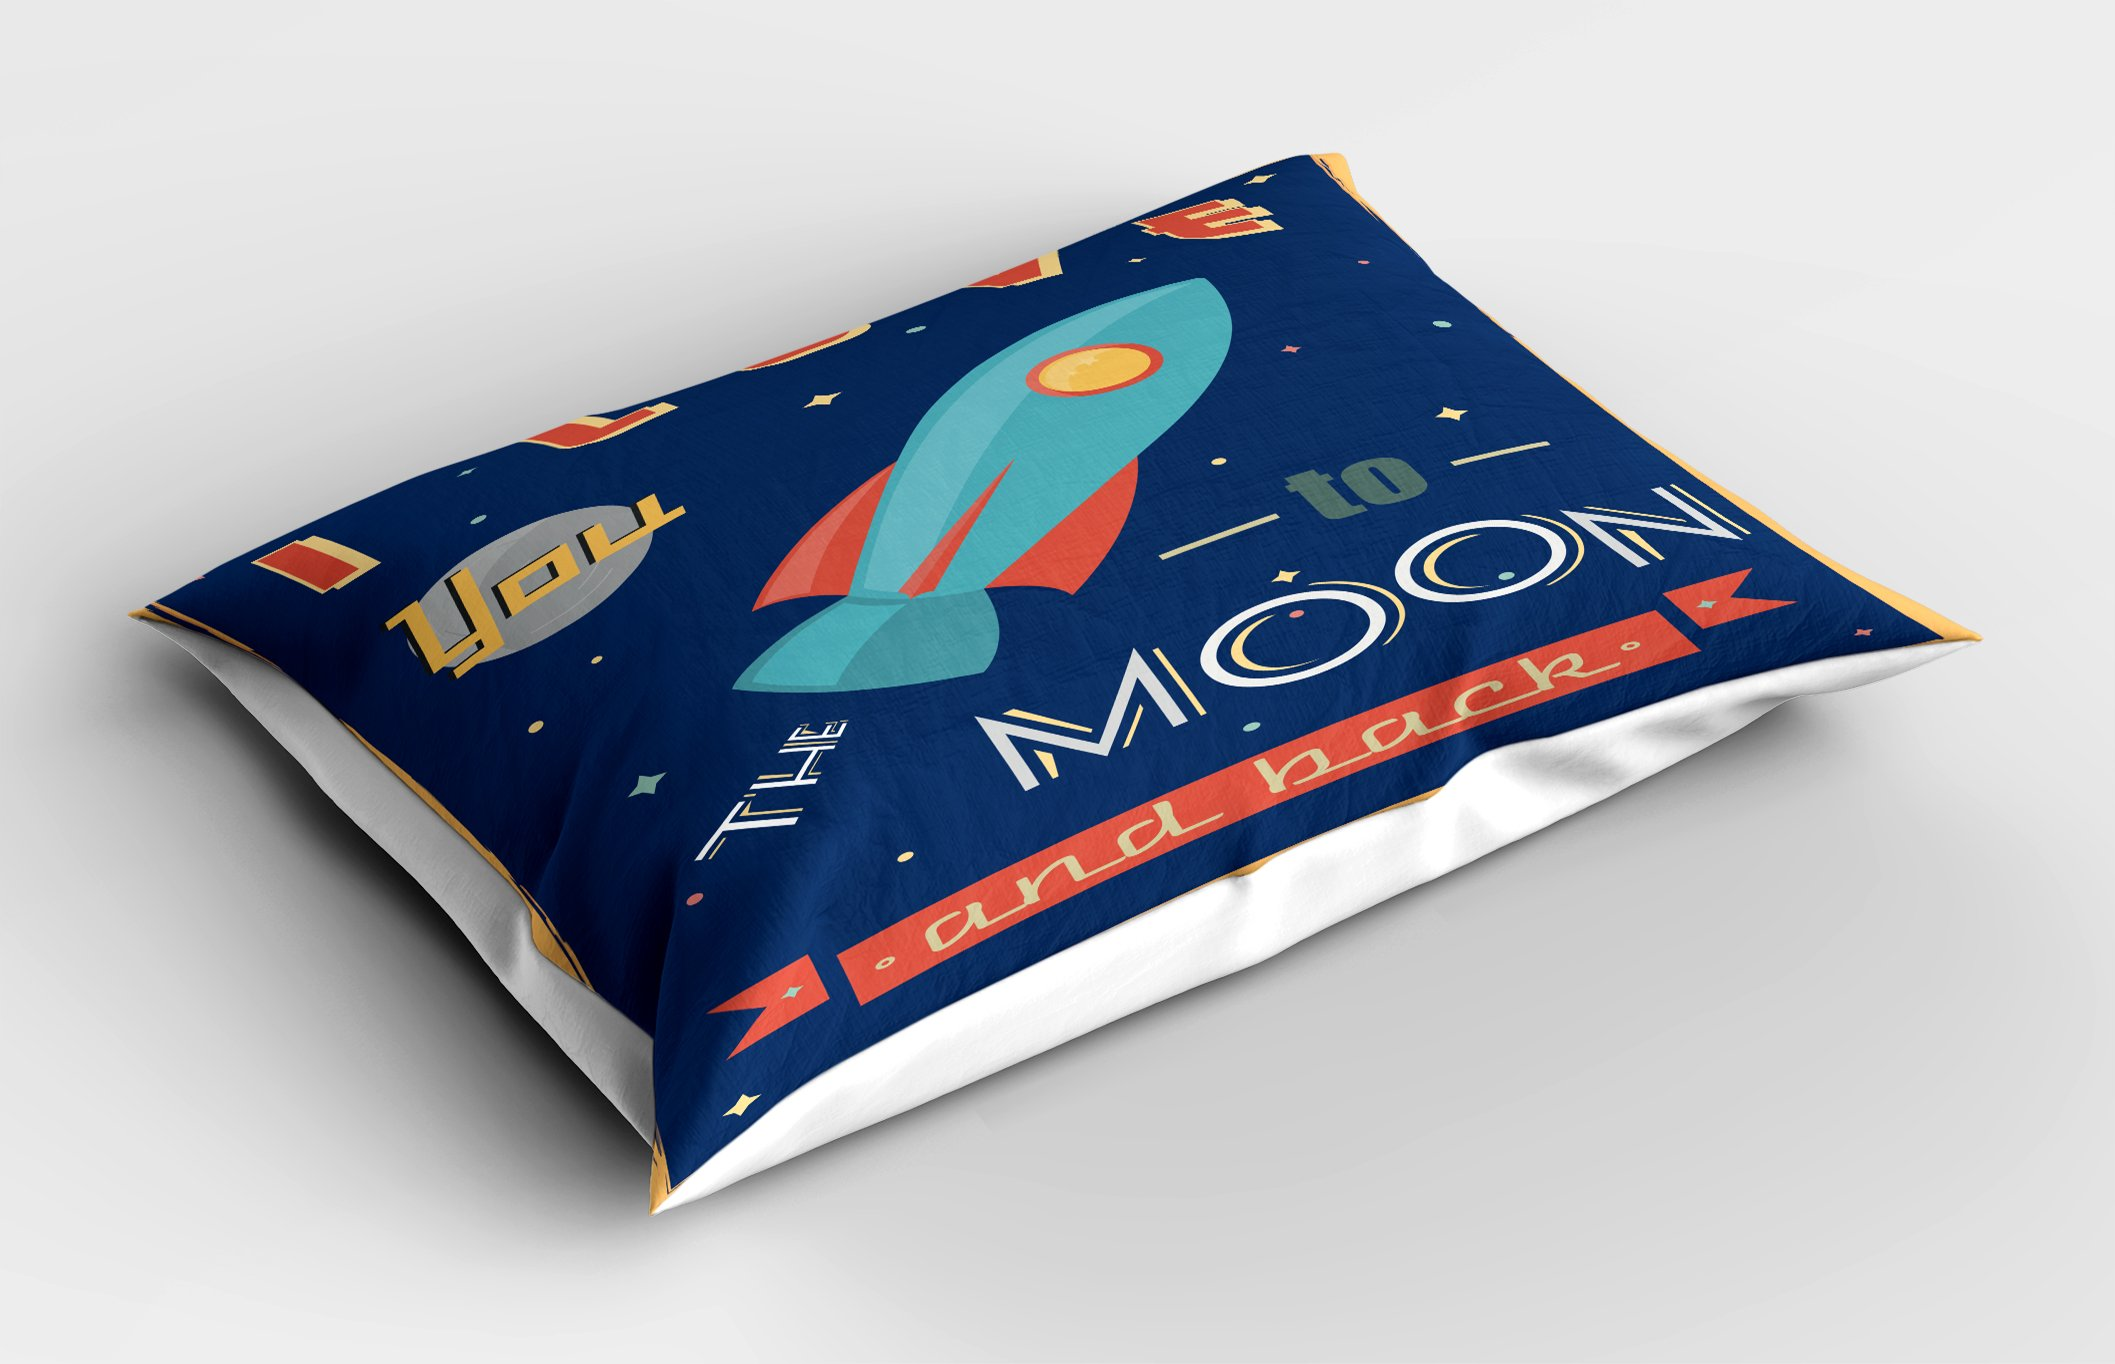 Ambesonne I Love You Pillow Sham, Spaceship Galaxy Cosmos Valentine's Theme Retro Inspirational Letters, Decorative Standard Queen Size Printed Pillowcase, 30 X 20 inches, Dark Blue and Coral by Ambesonne (Image #2)